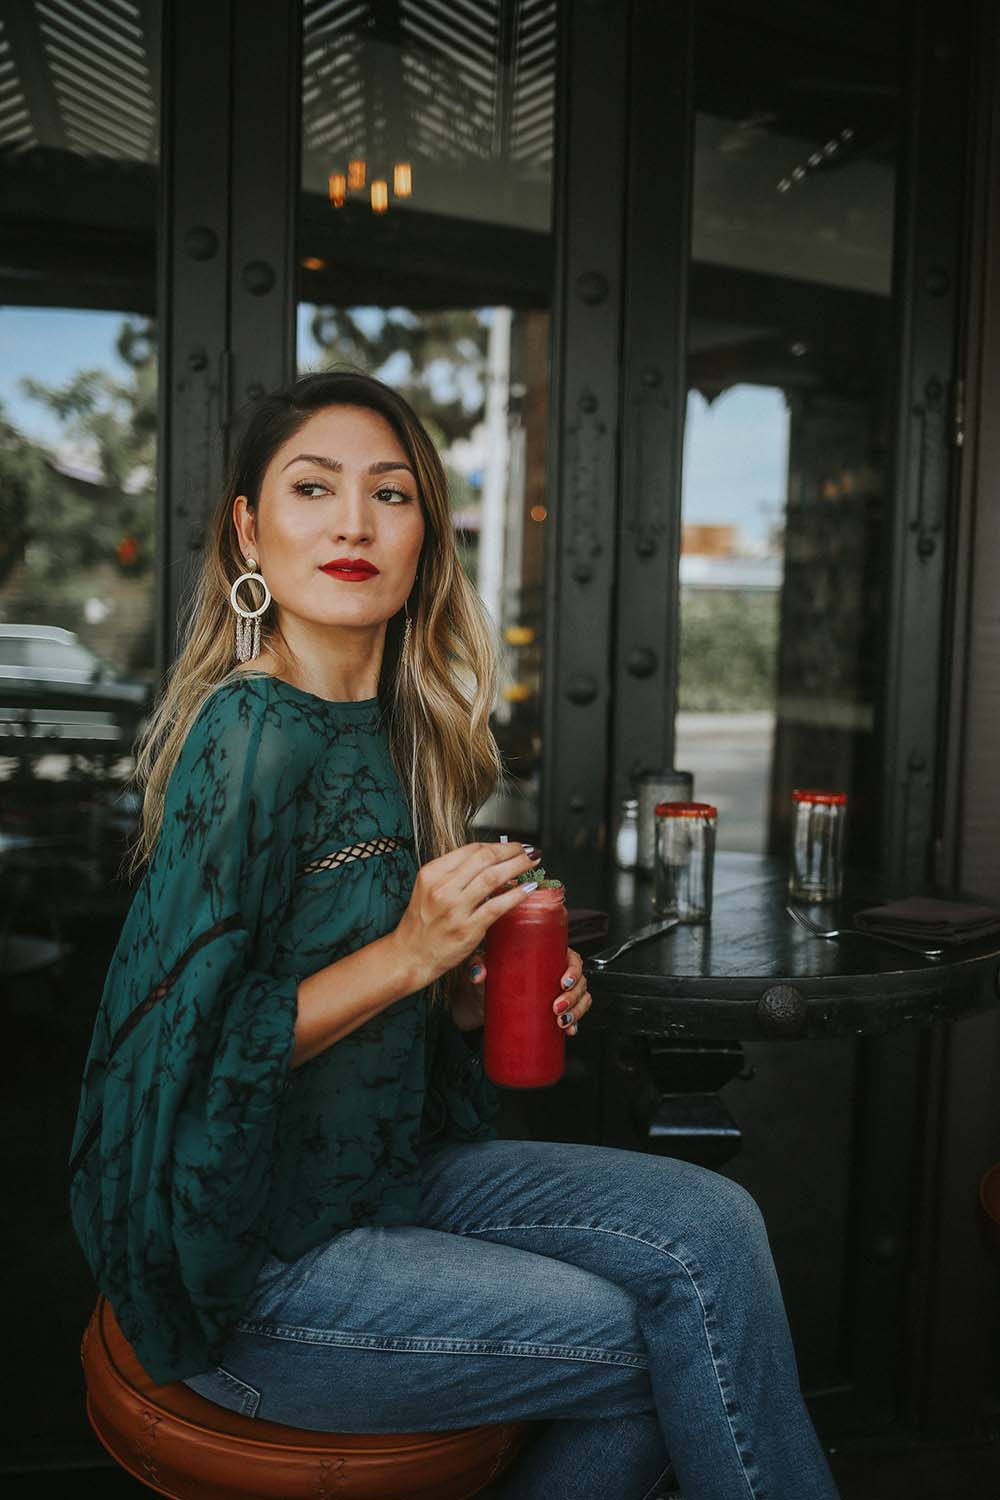 5 Things I'm Looking Forward To This Holiday, holidays, holiday season, festive, party, events, lucky brand, jeans, melrodstyle, street style, ootd, hispanic blogger, mexican blogger, latina blogger, la blogger, fashion, style,